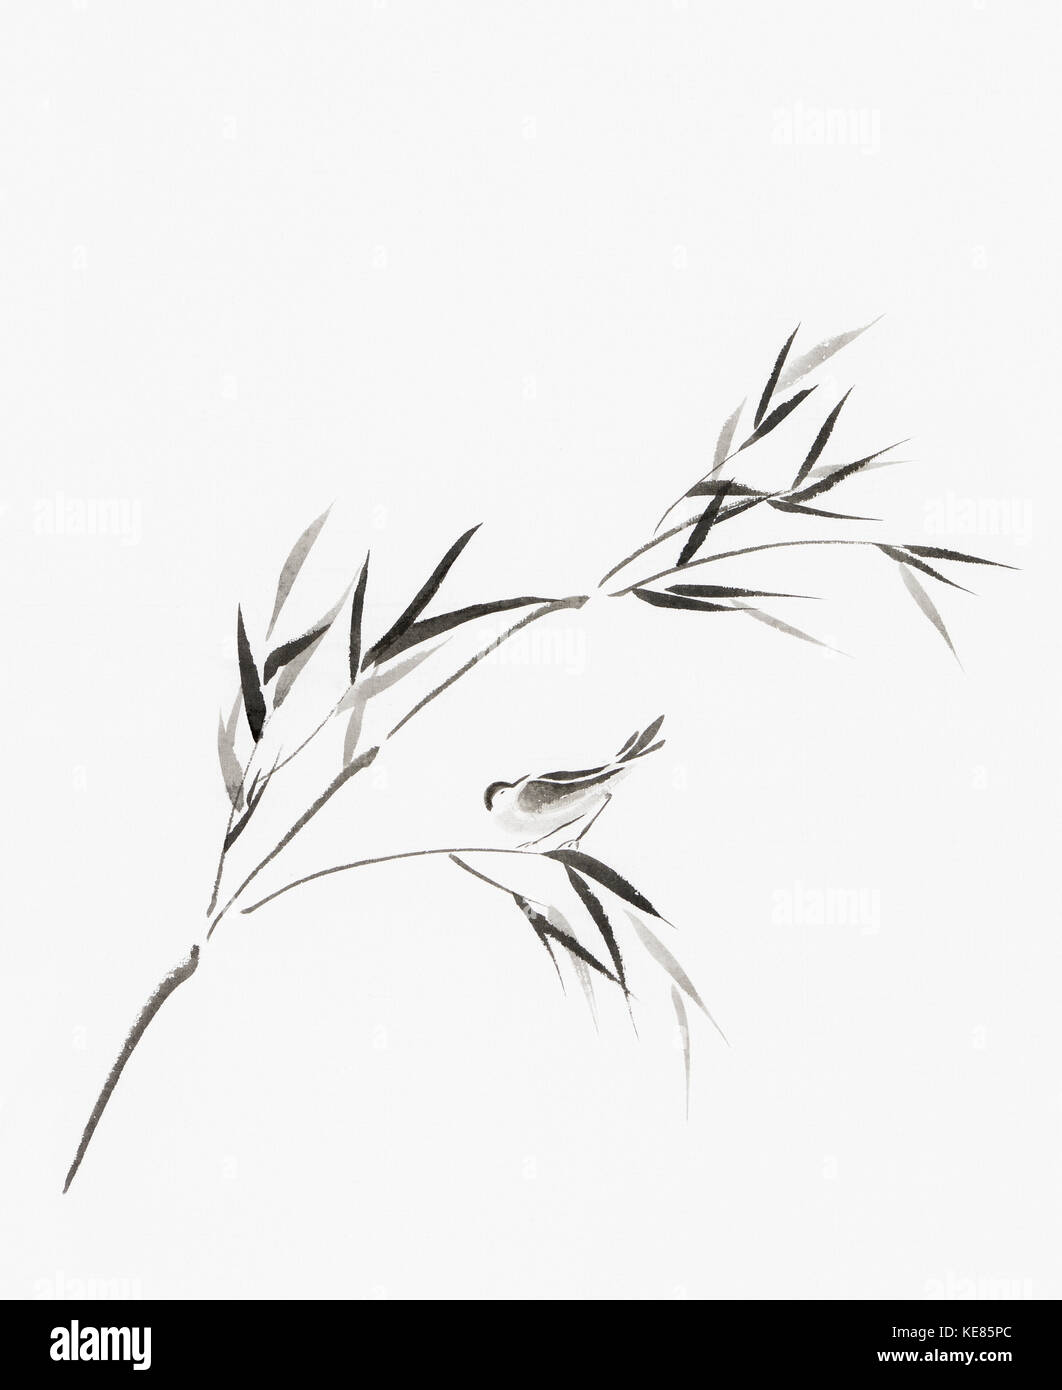 Bird perching on a bamboo branch with leaves artistic oriental style illustration, Japanese Zen Sumi-e ink painting - Stock Image